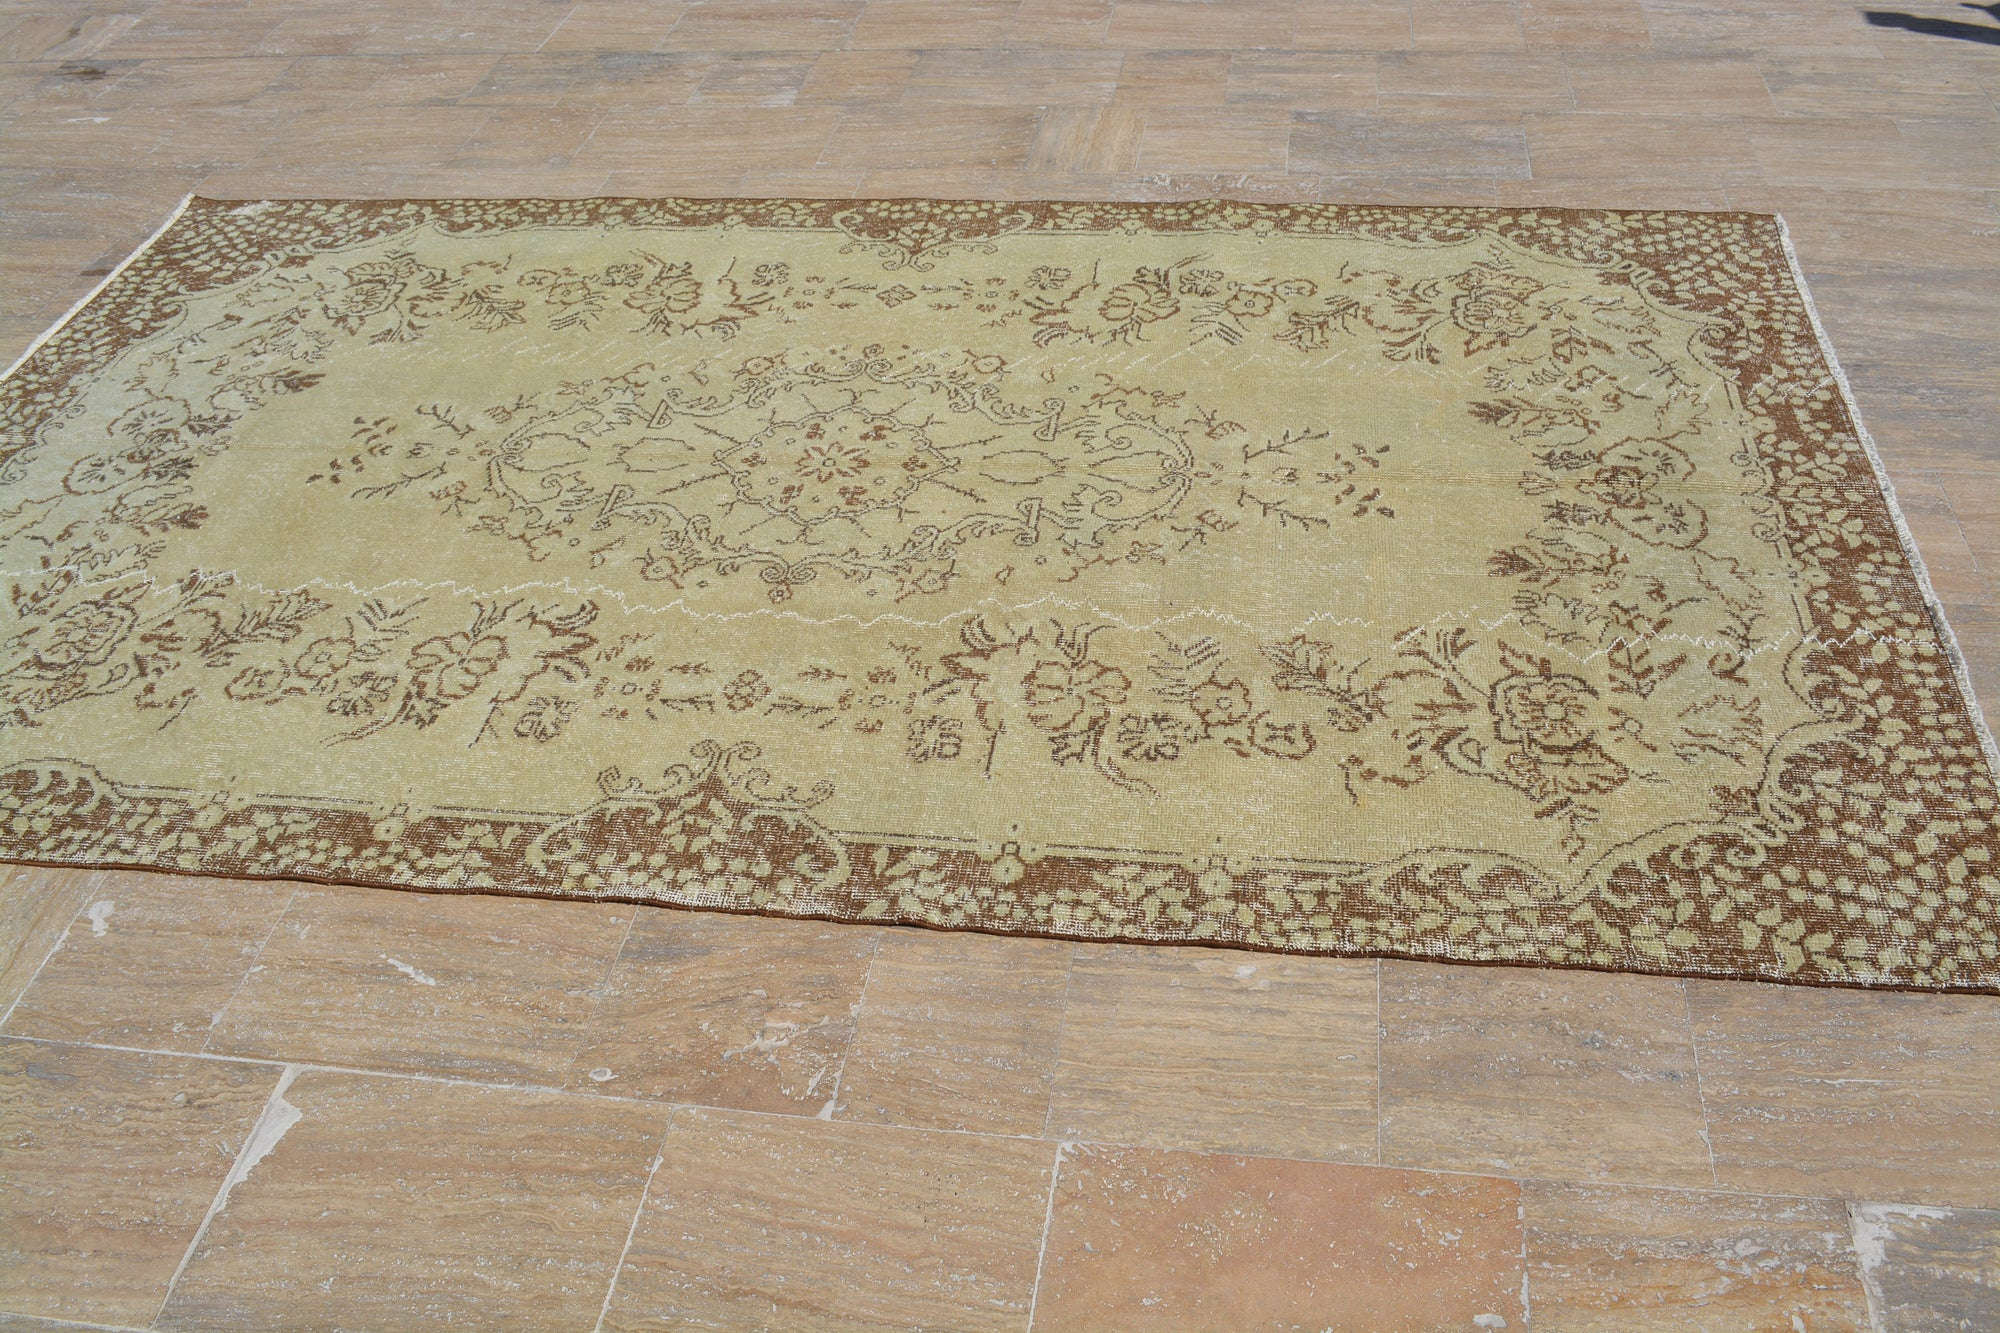 Turkish Rugs Yellow, Antique Oushak Rug, Brown Area rug, Vintage Turkish carpet, Small rug, Oriental rug, 5.6x9.3 Ft AG517